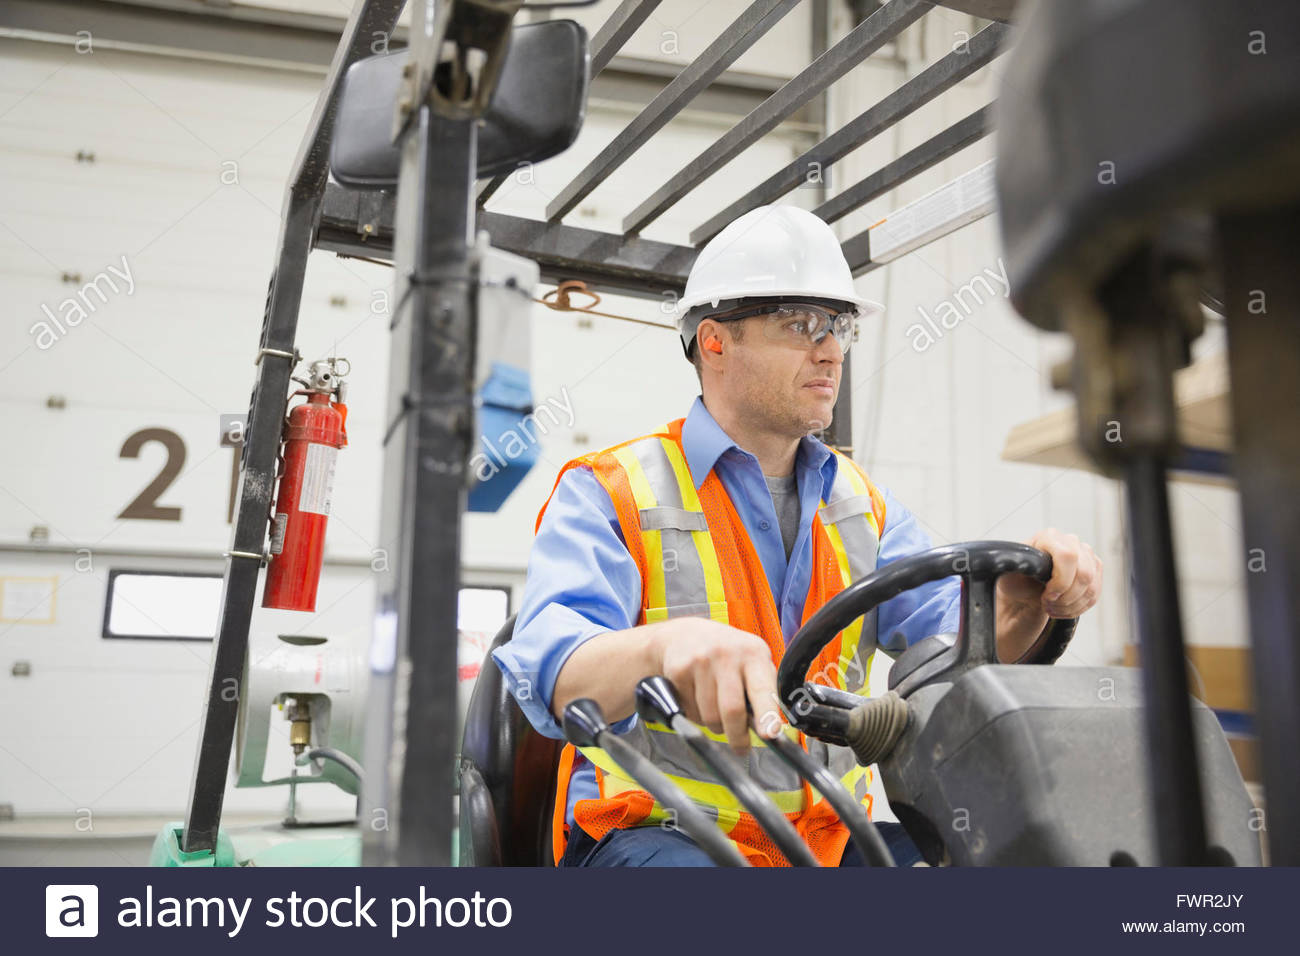 Manual worker driving forklift in warehouse - Stock Image